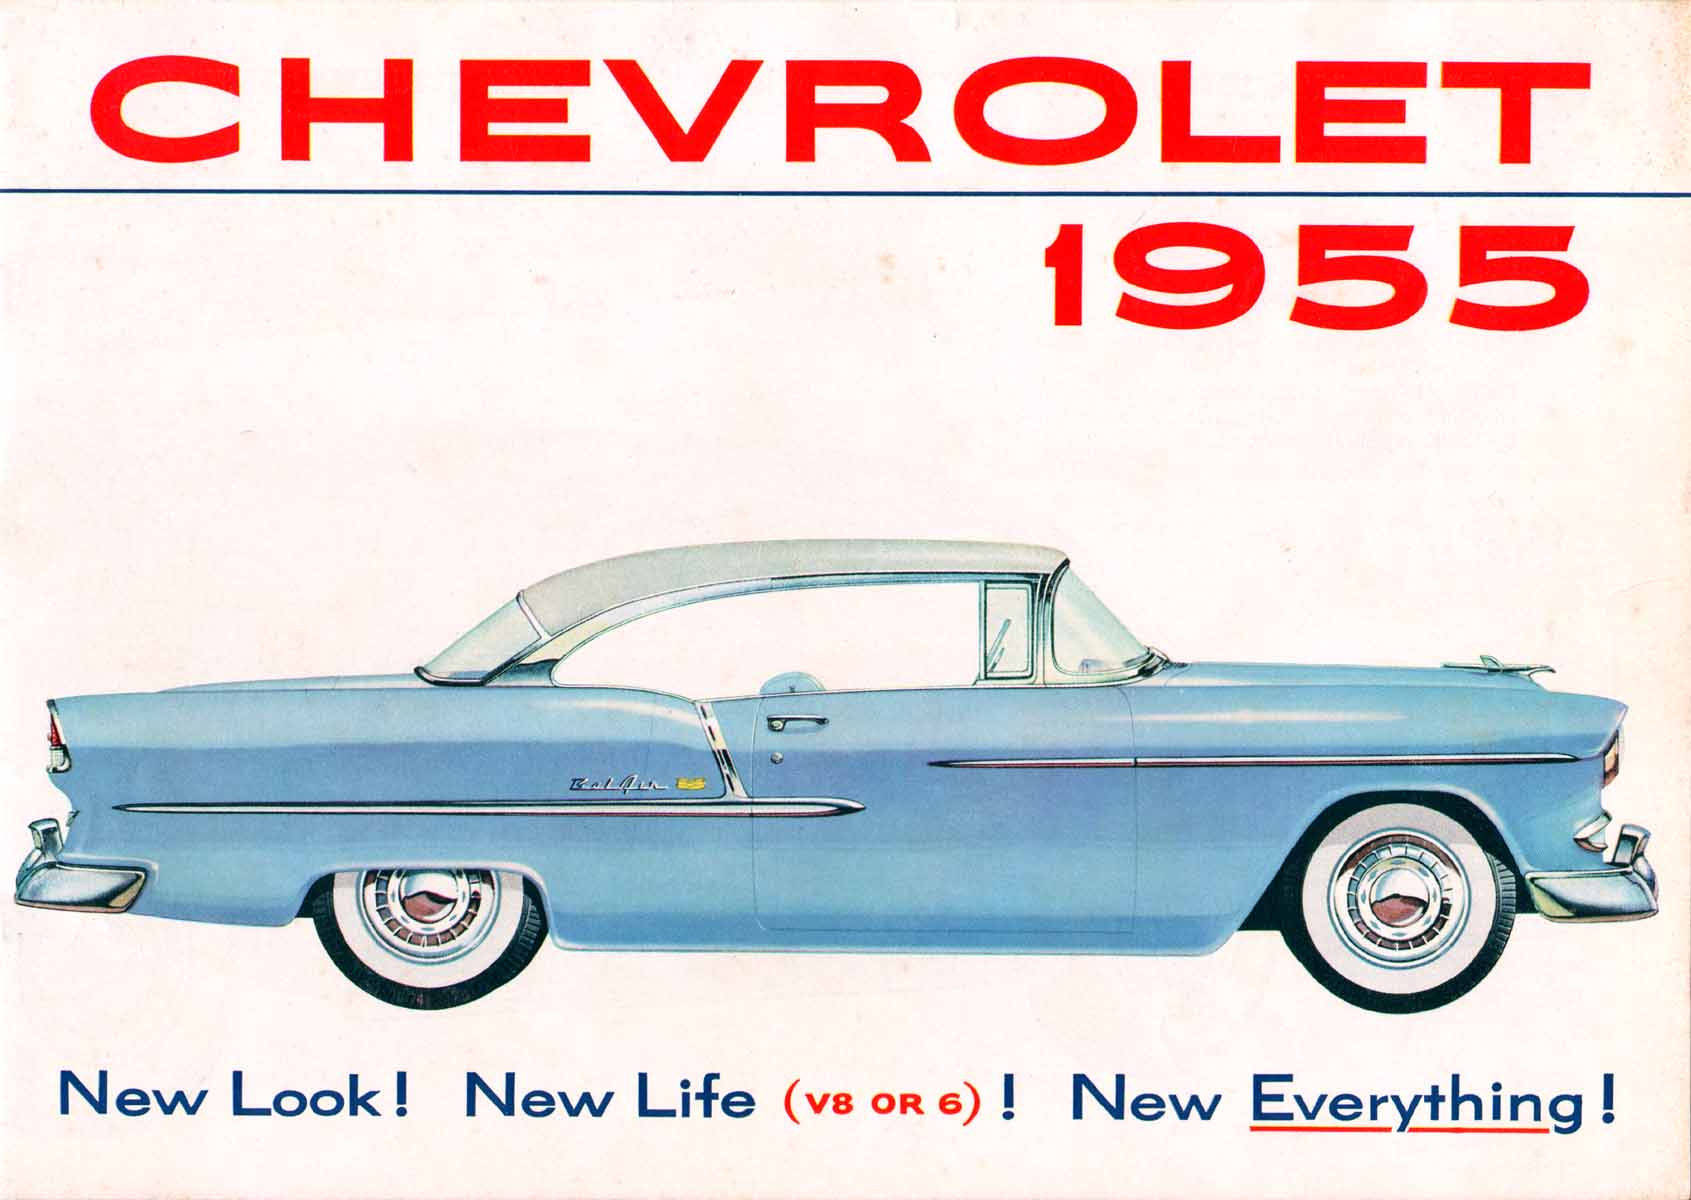 Curbside Classic 1957 Chevrolet Two Ten Overexposed Sales Brochure After Many Years Of Being Perched Atop The Chart Powered Exclusively By Six Cylinder Engines Since 1929 Introduced Their First V8 Engine